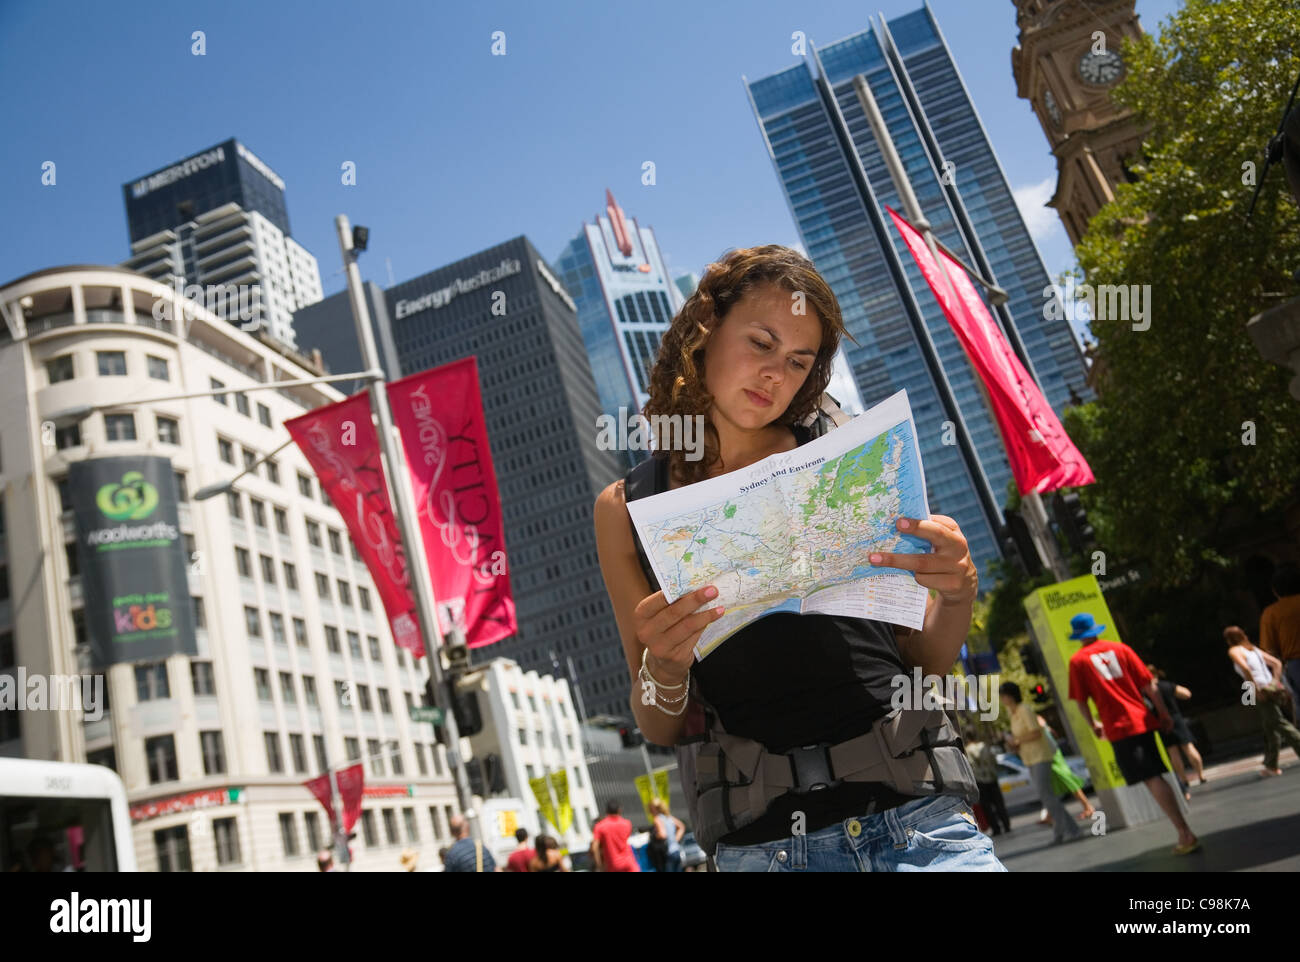 Female backpacker reading map with city skyline in background.  Sydney, New South Wales, Australia - Stock Image